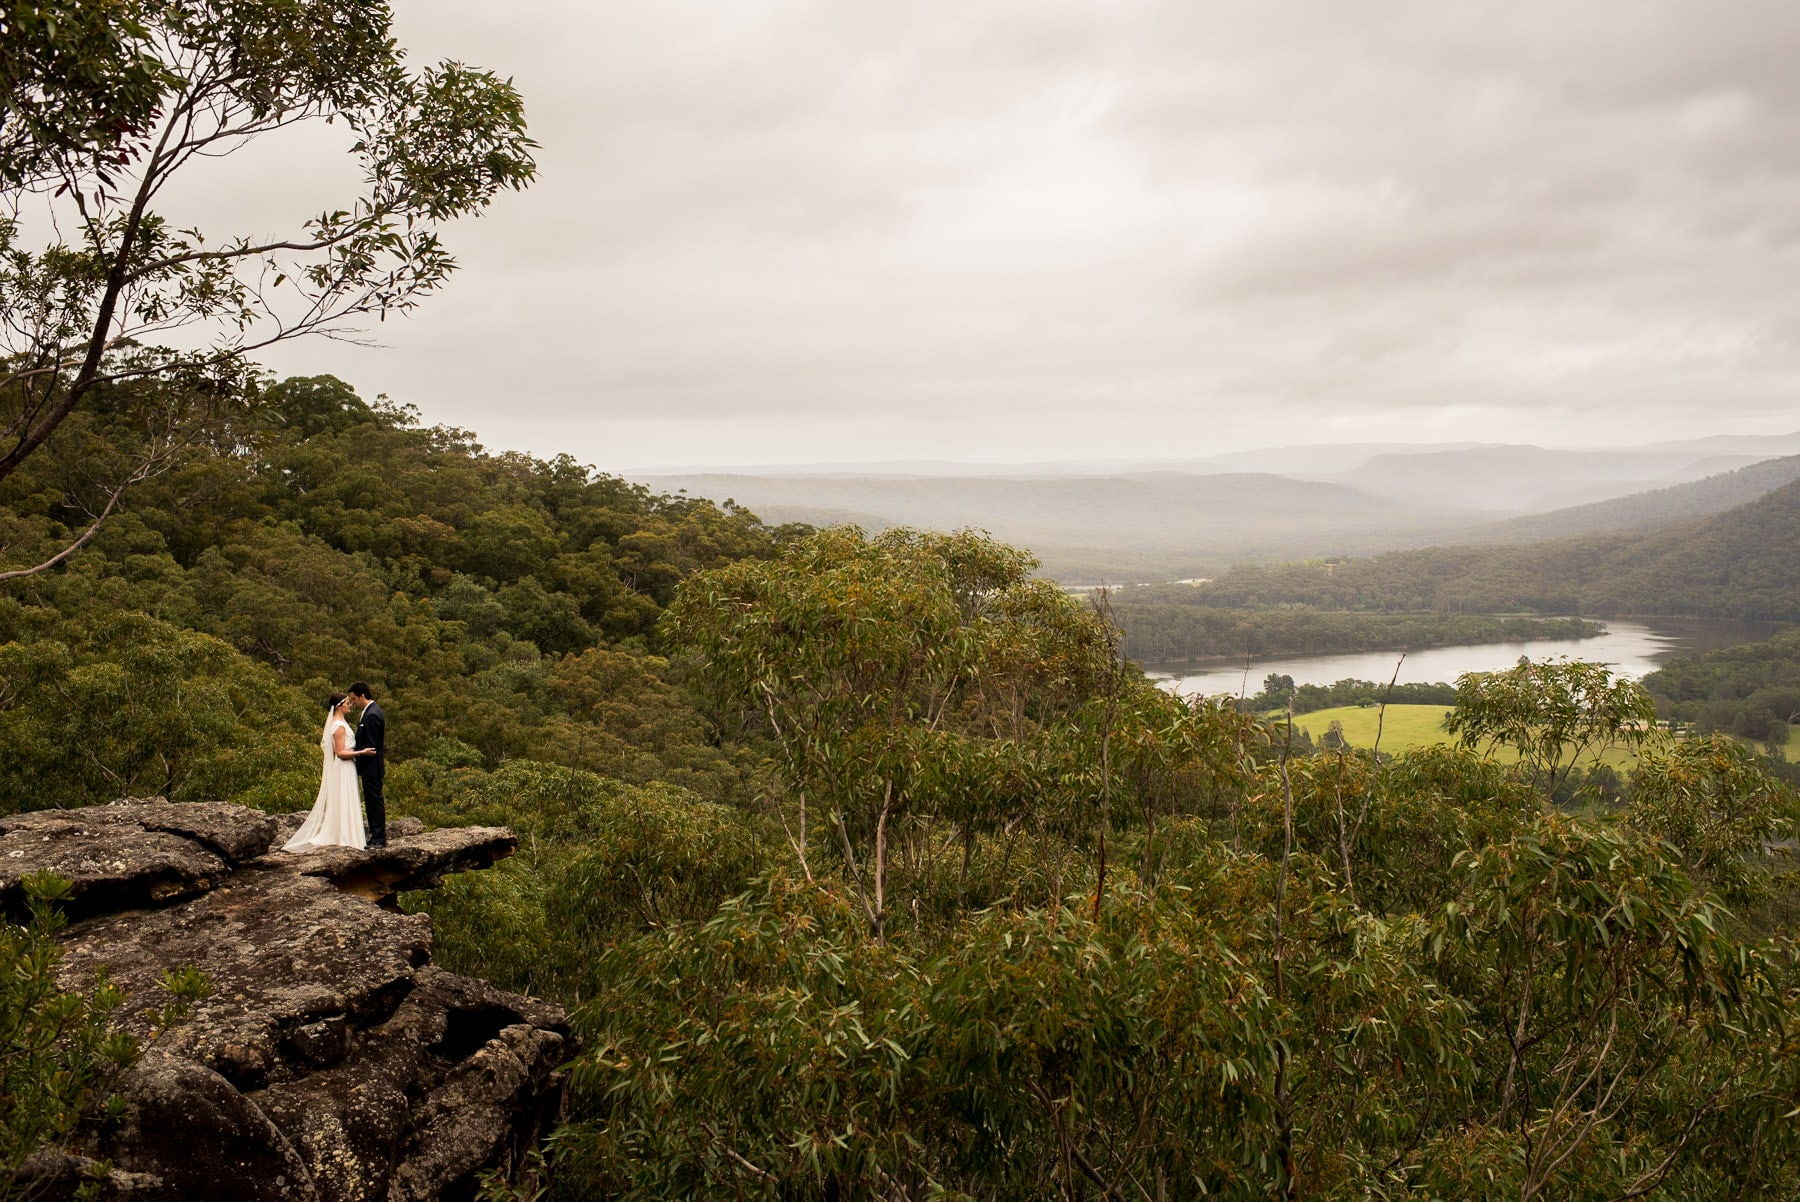 Kangaroo Valley Wedding | Newly weds embrace on cliff edge overlooking forest